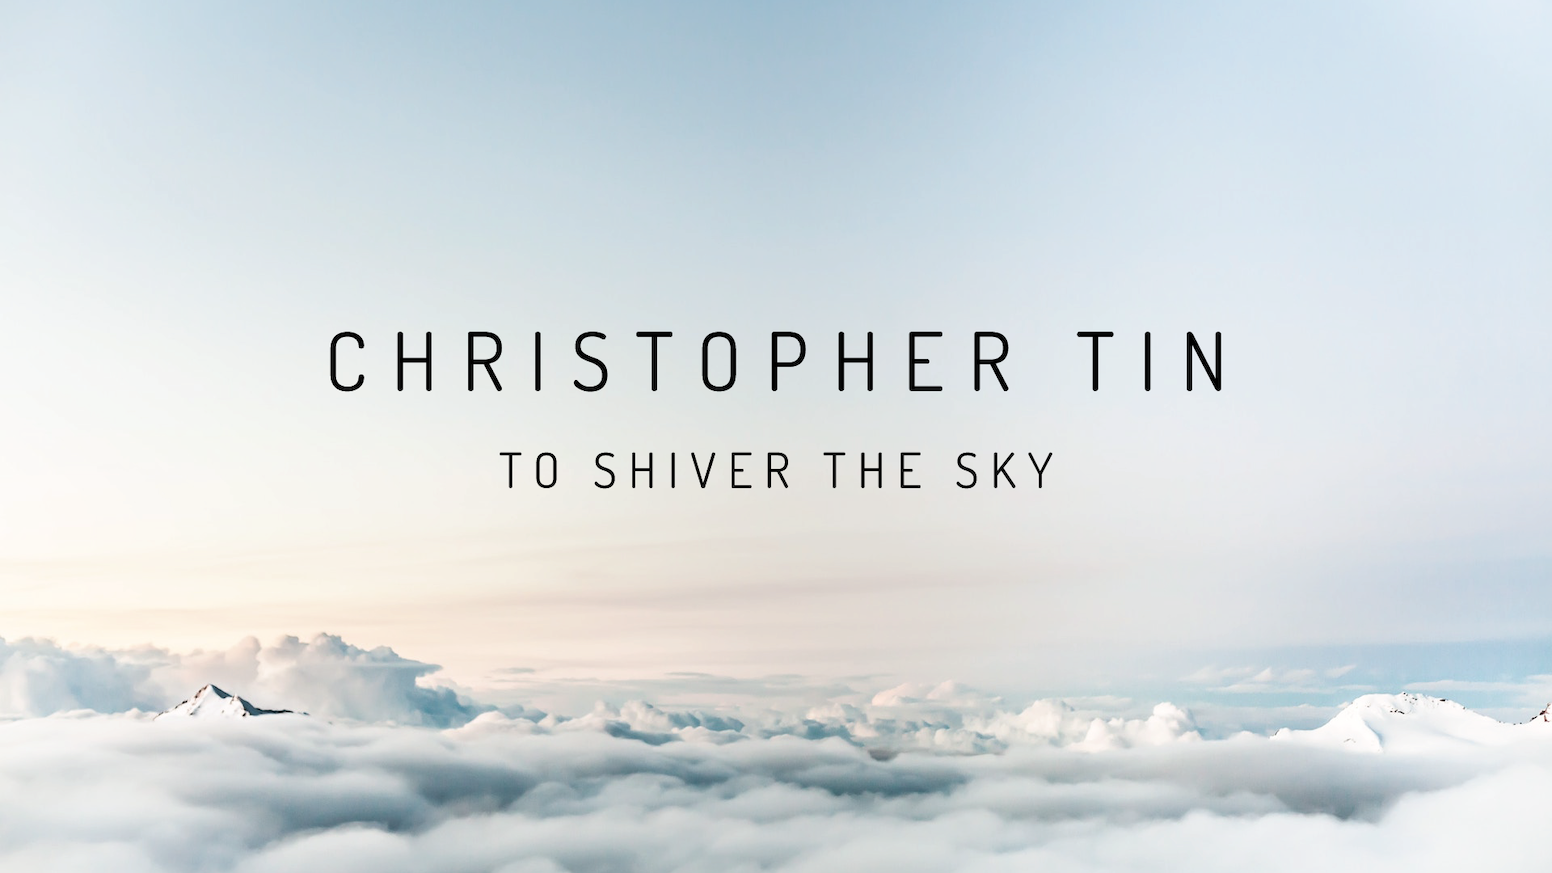 The two-time Grammy-winning composer turns his latest theme from the 'Civilization' franchise into an oratorio about conquering the sky.